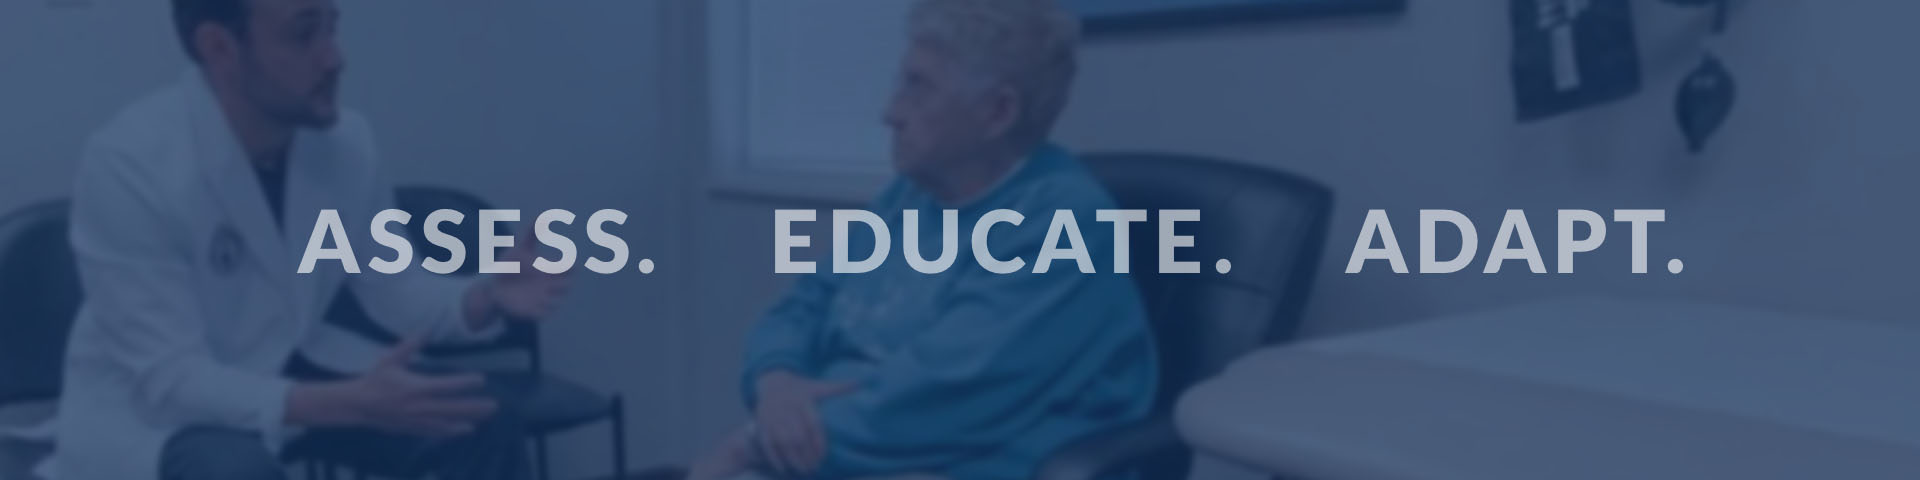 Assess. Educate. Adapt. - Epidural Steroid Injections & the mild® Procedure